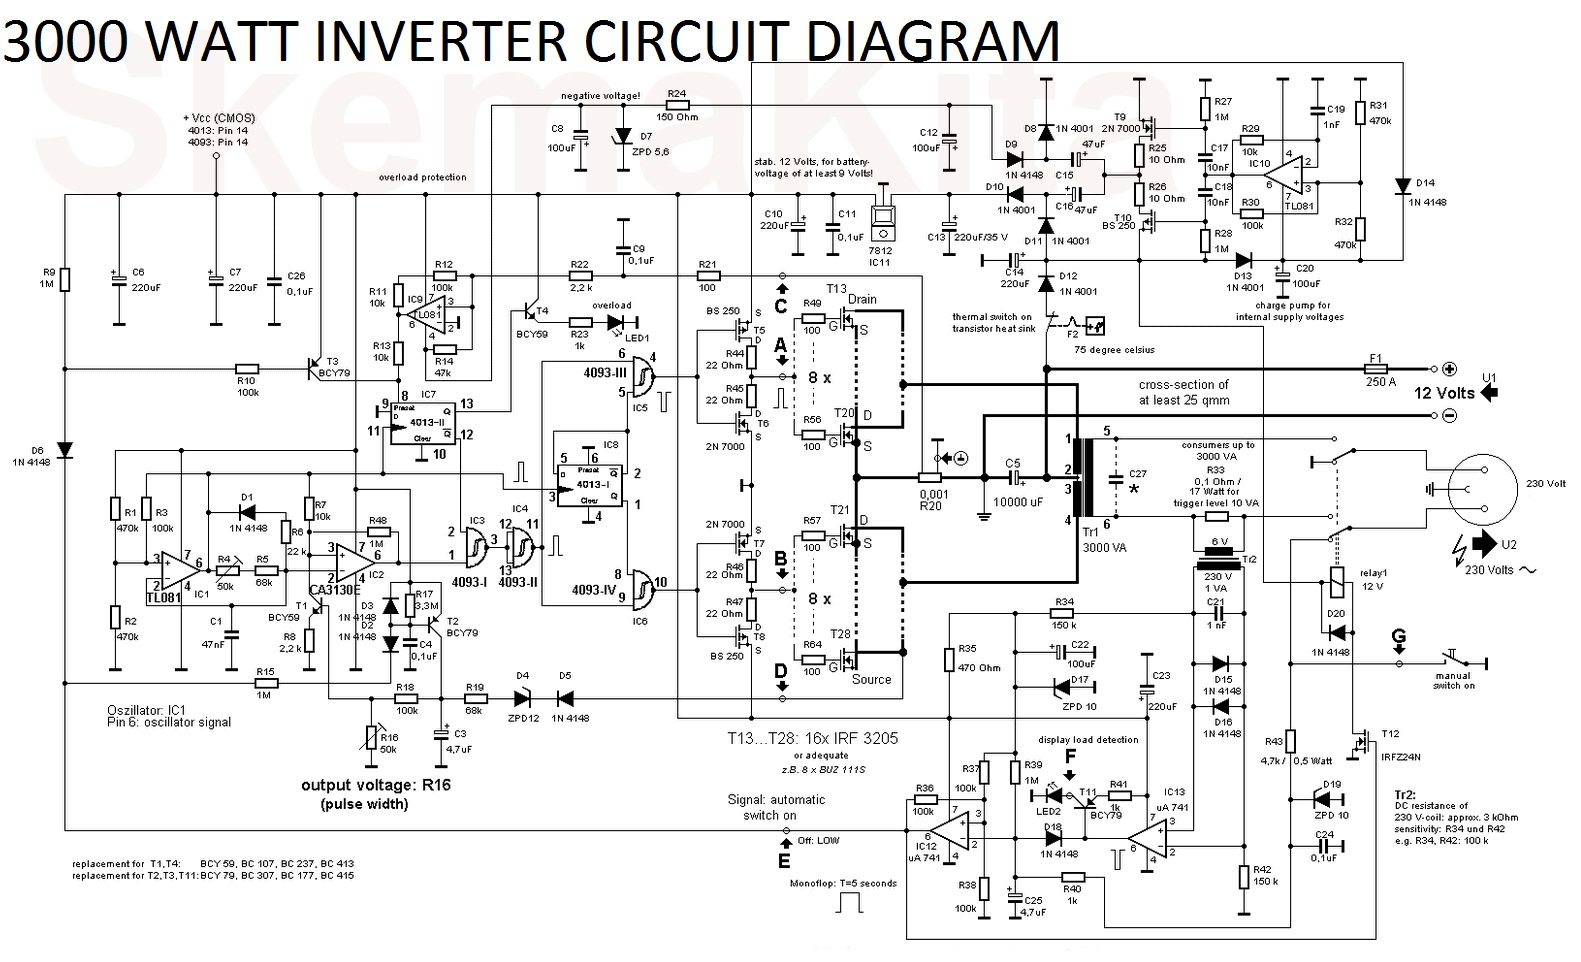 Wiring diagram inverter radio wiring diagram 3000 watt inverter circuit diagram electronic circuit rh elcircuit com wiring diagram inverter charger wiring diagram inverter dc to ac asfbconference2016 Images